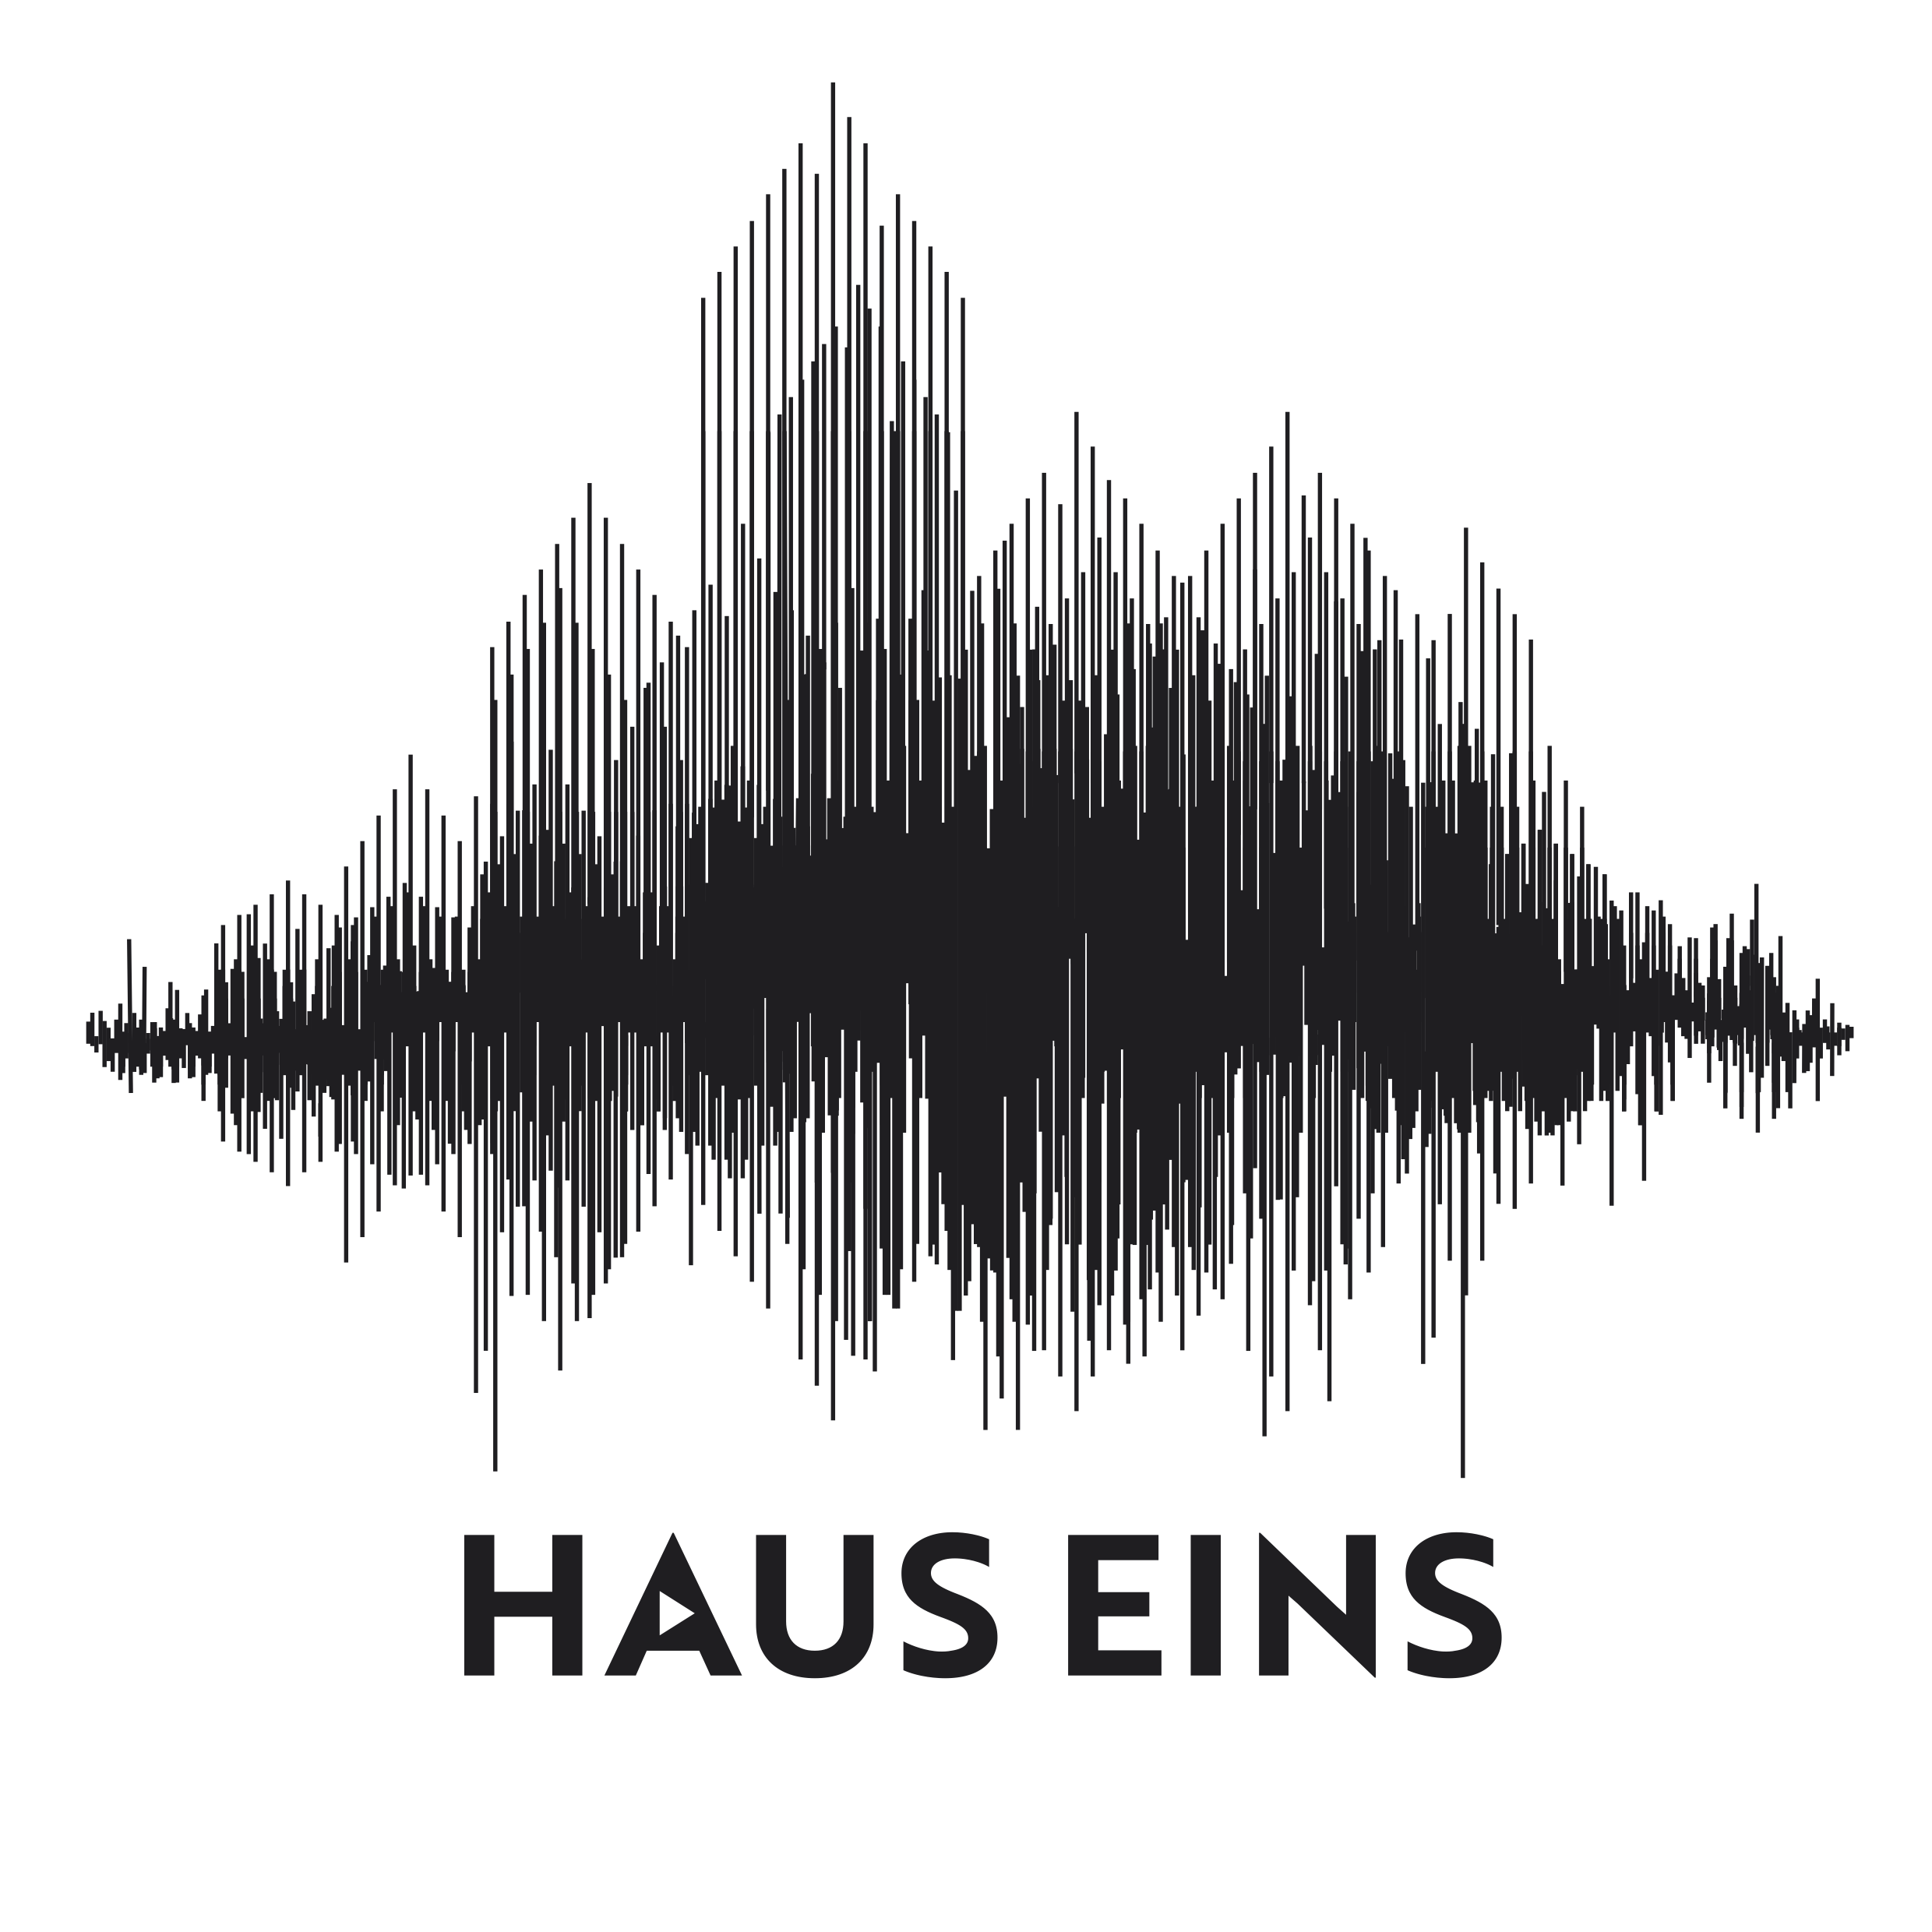 hauseins